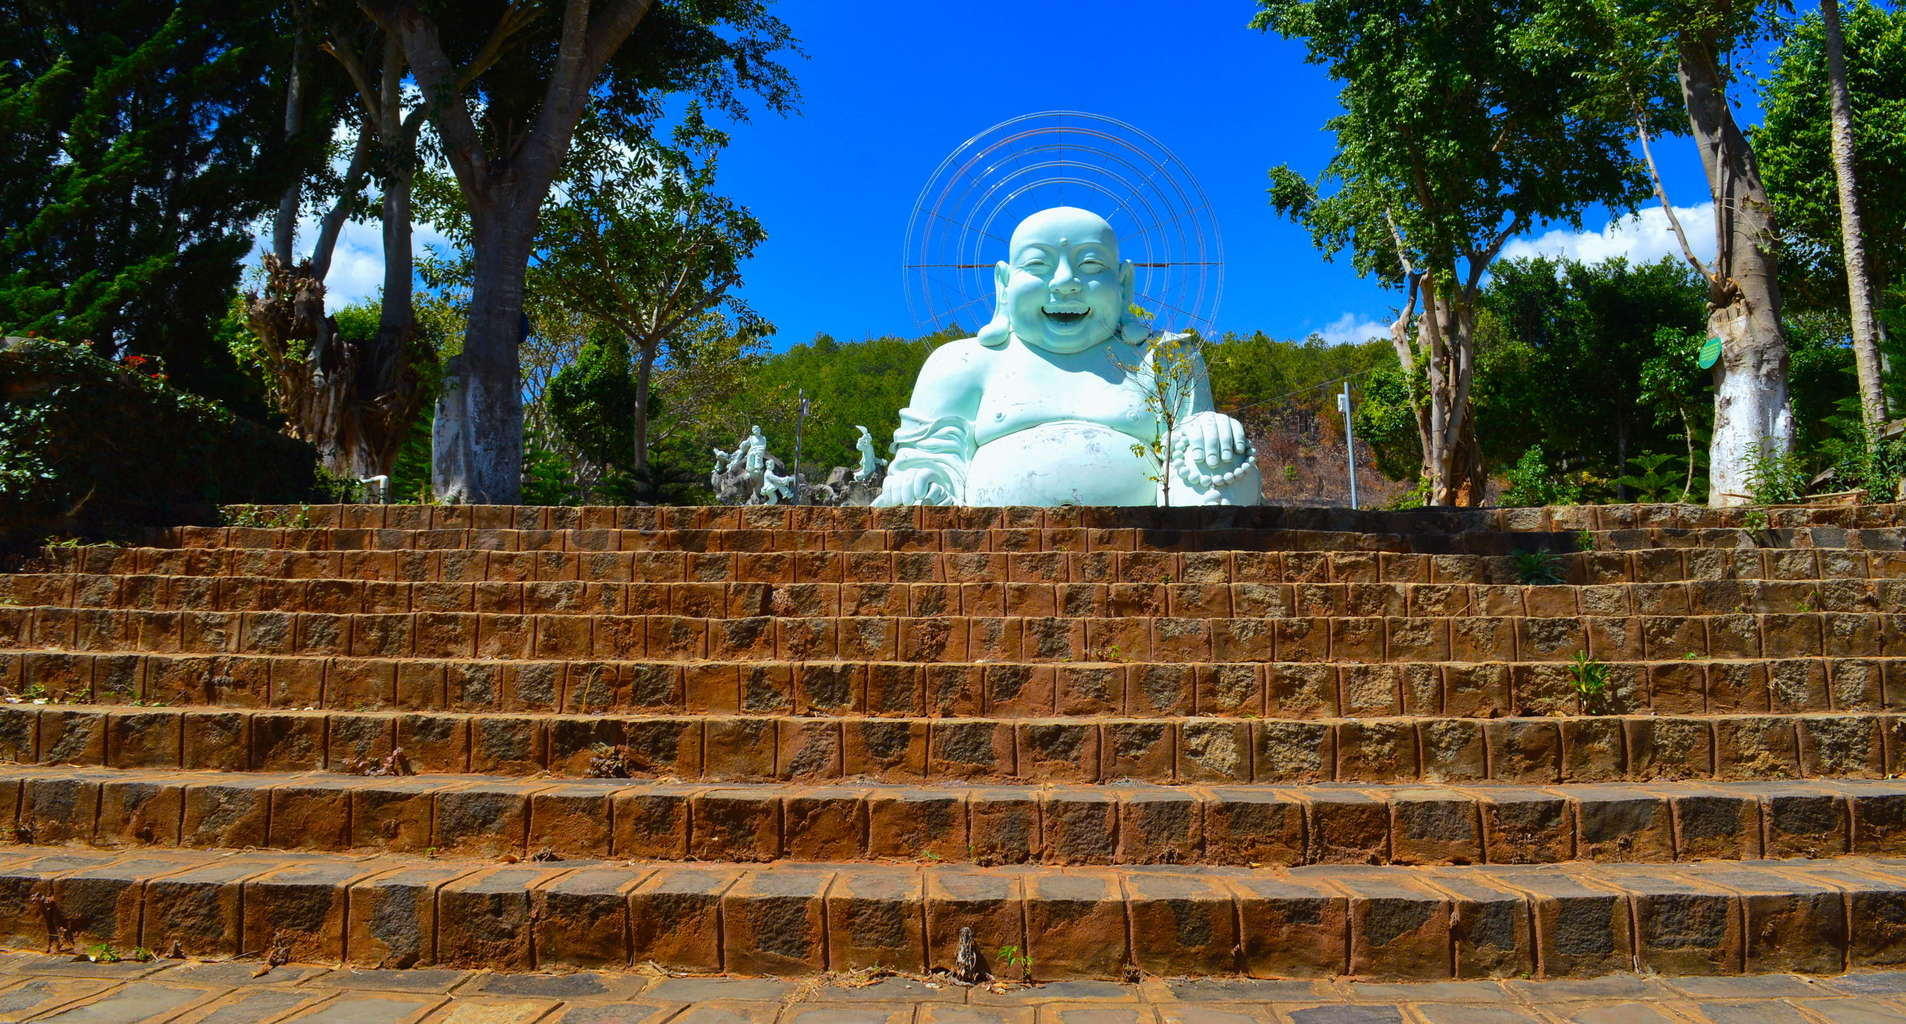 The Travel Ninjas Visiting the Happy Buddha in Dalat, Vietnam